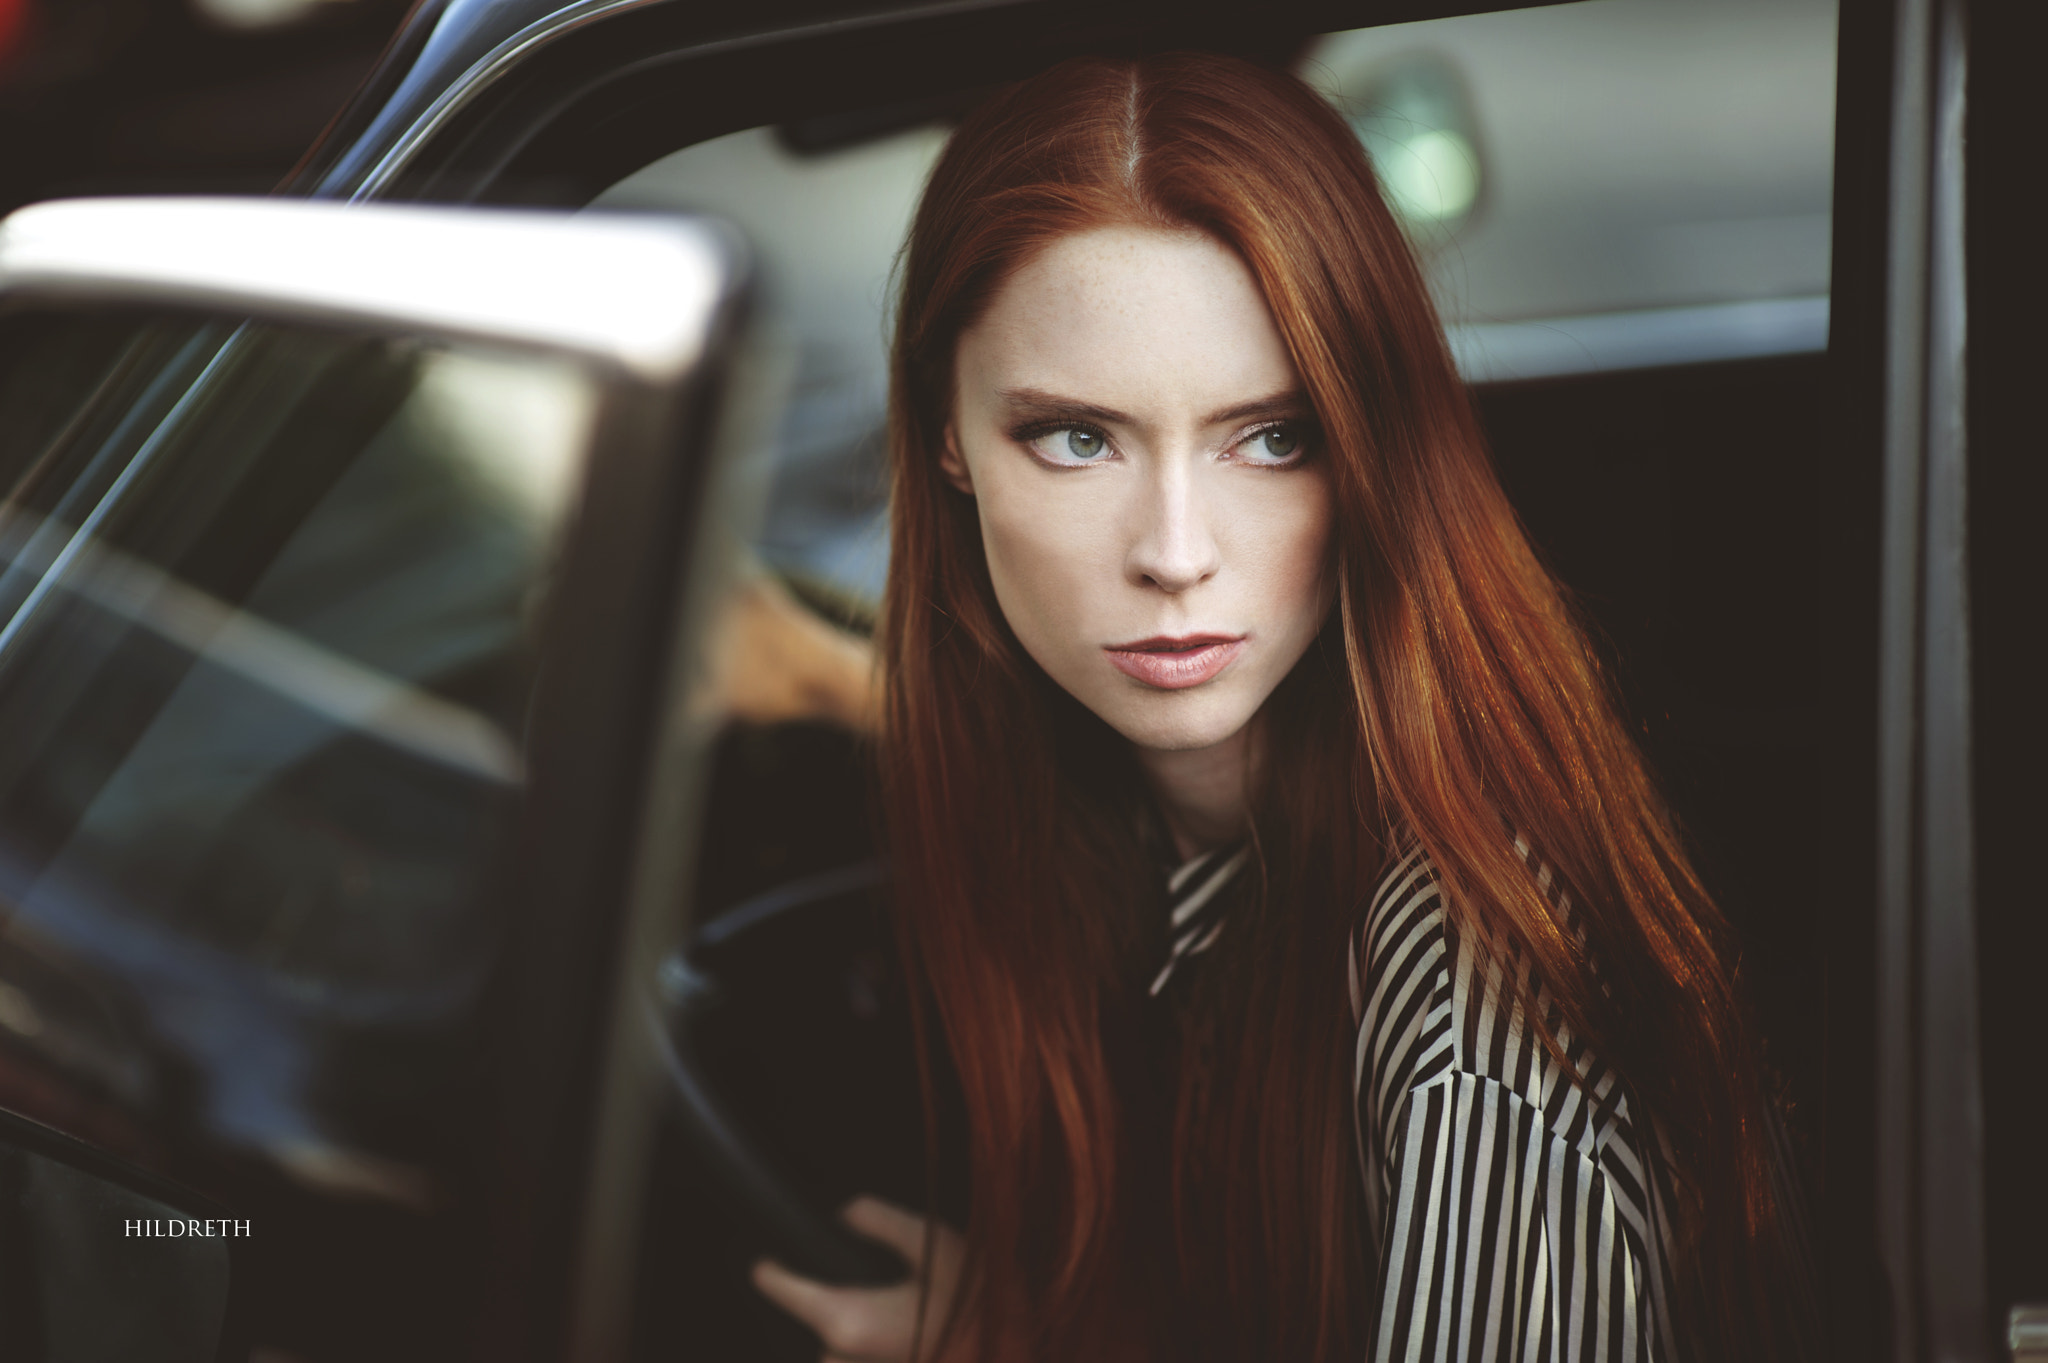 Photograph Marianne by Charles Hildreth on 500px